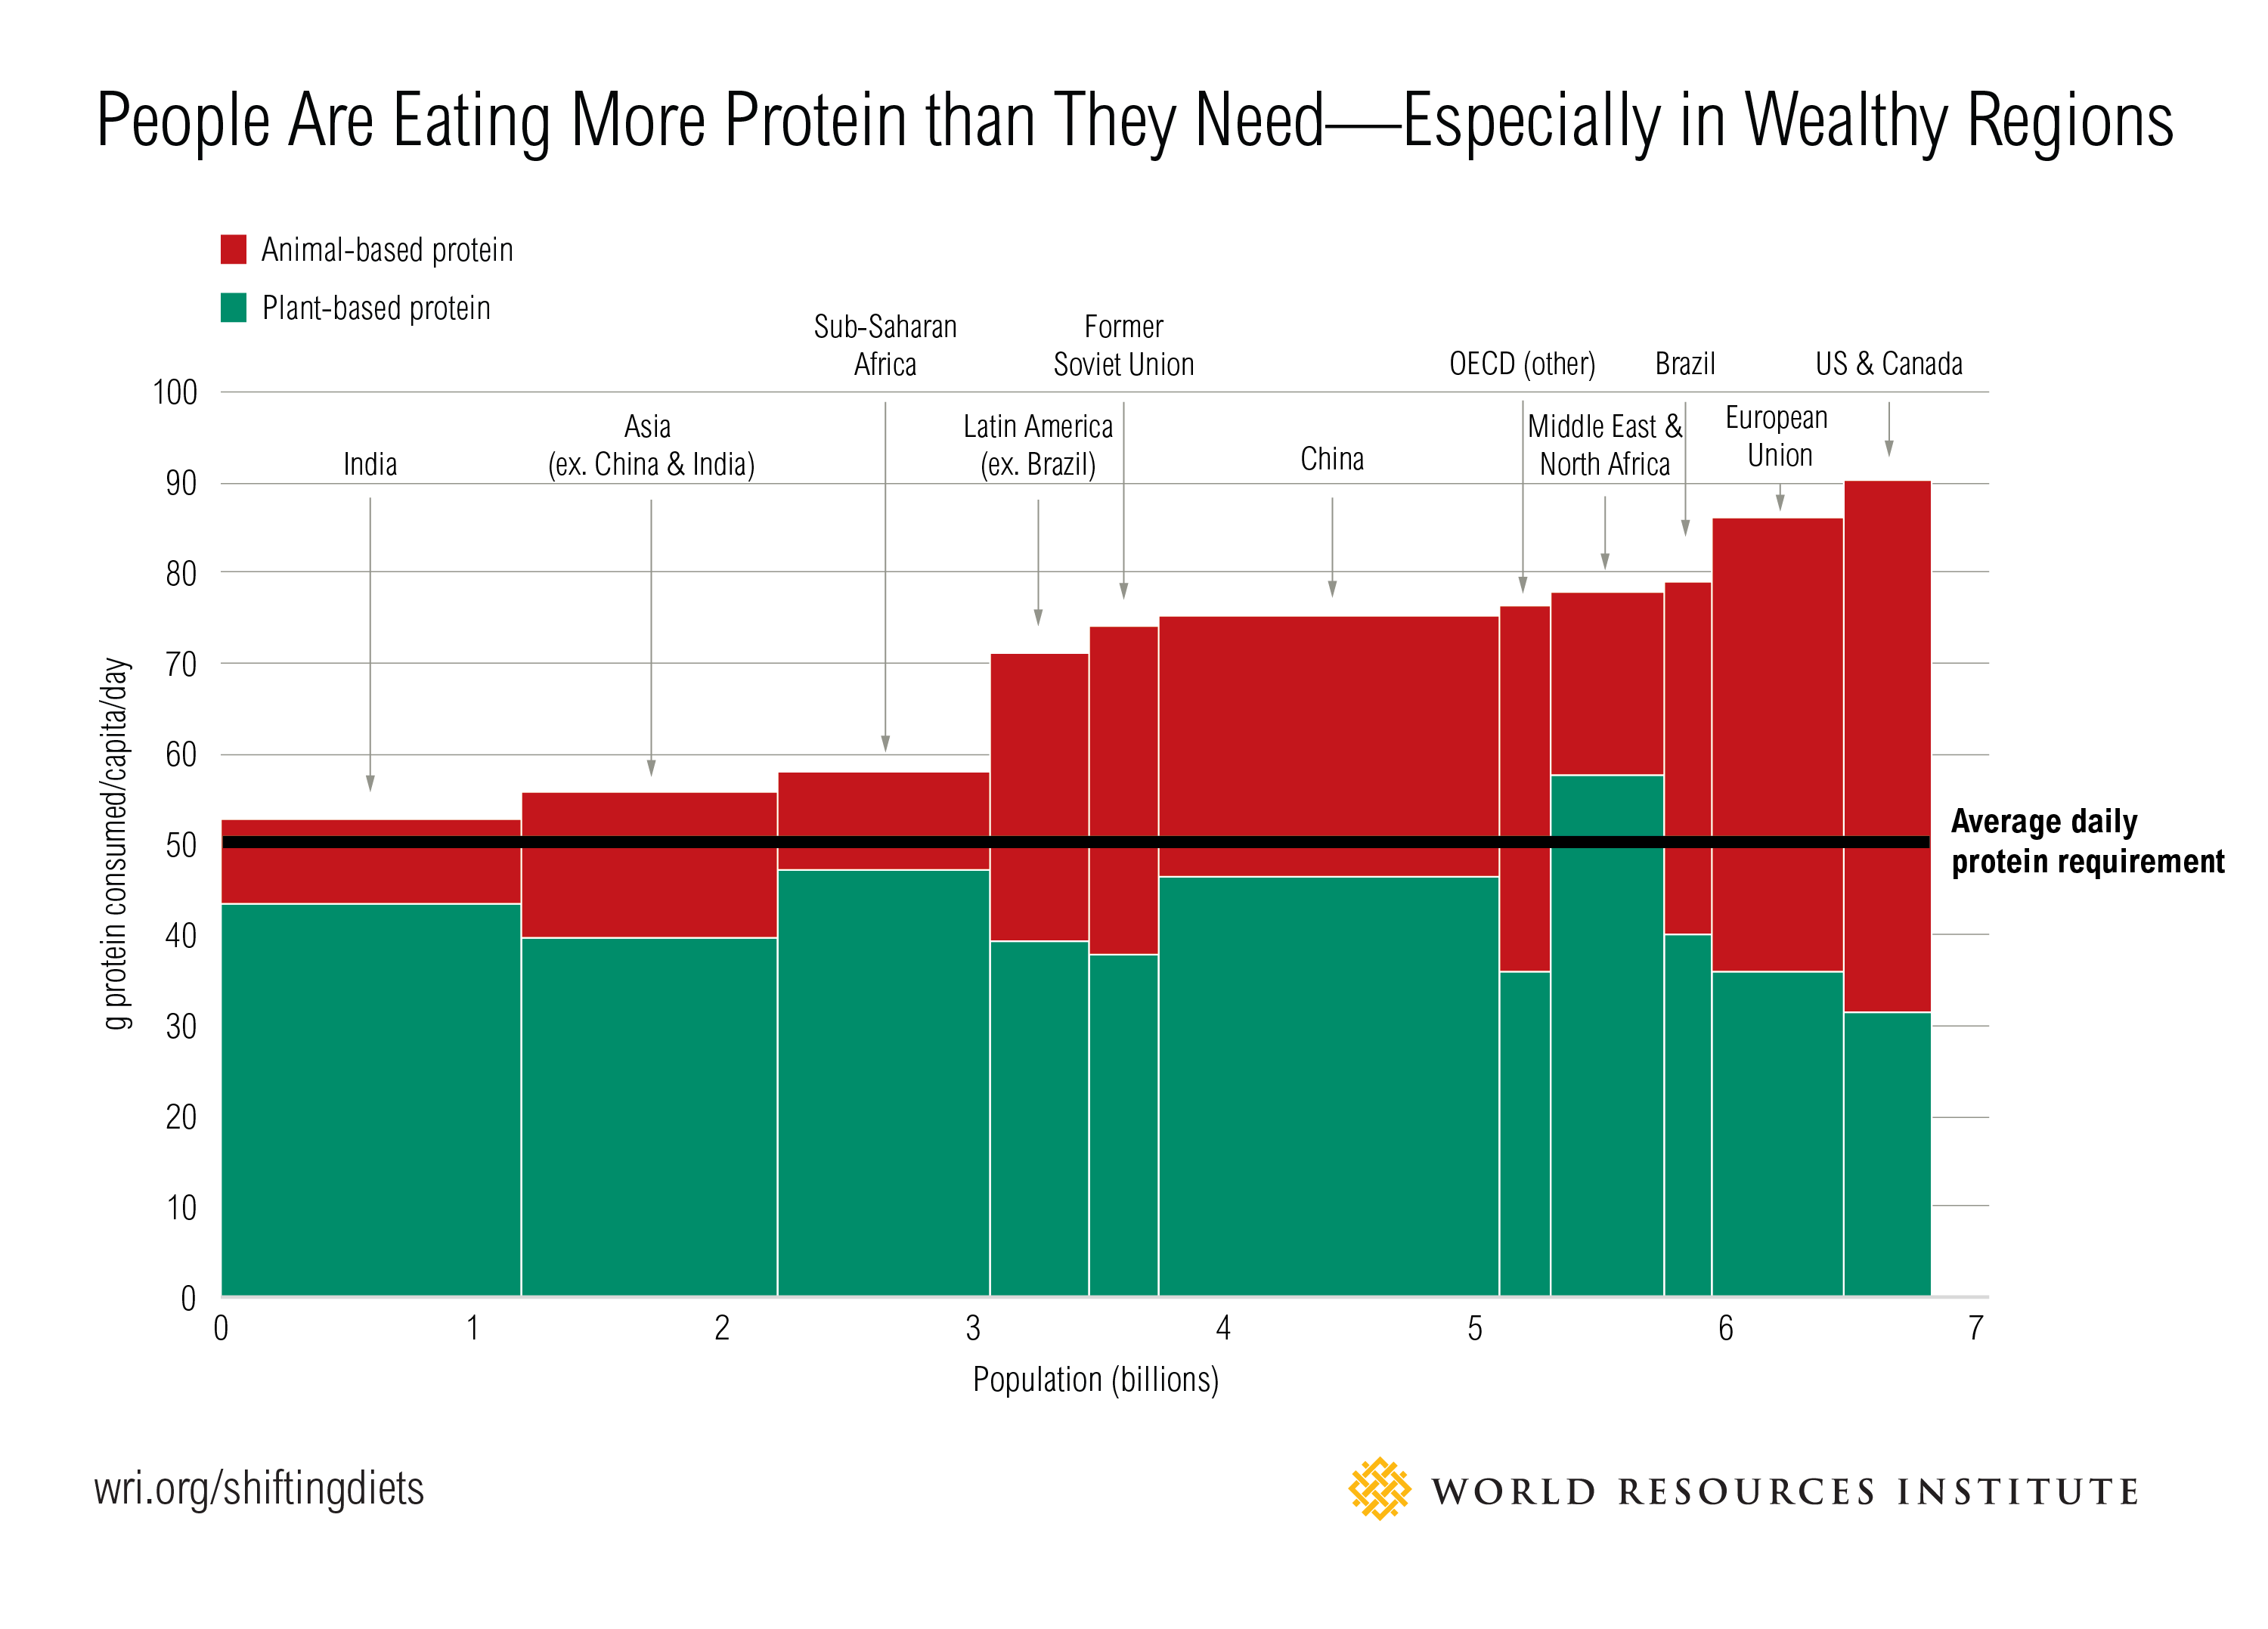 Most People Are Eating More Protein Than They Need